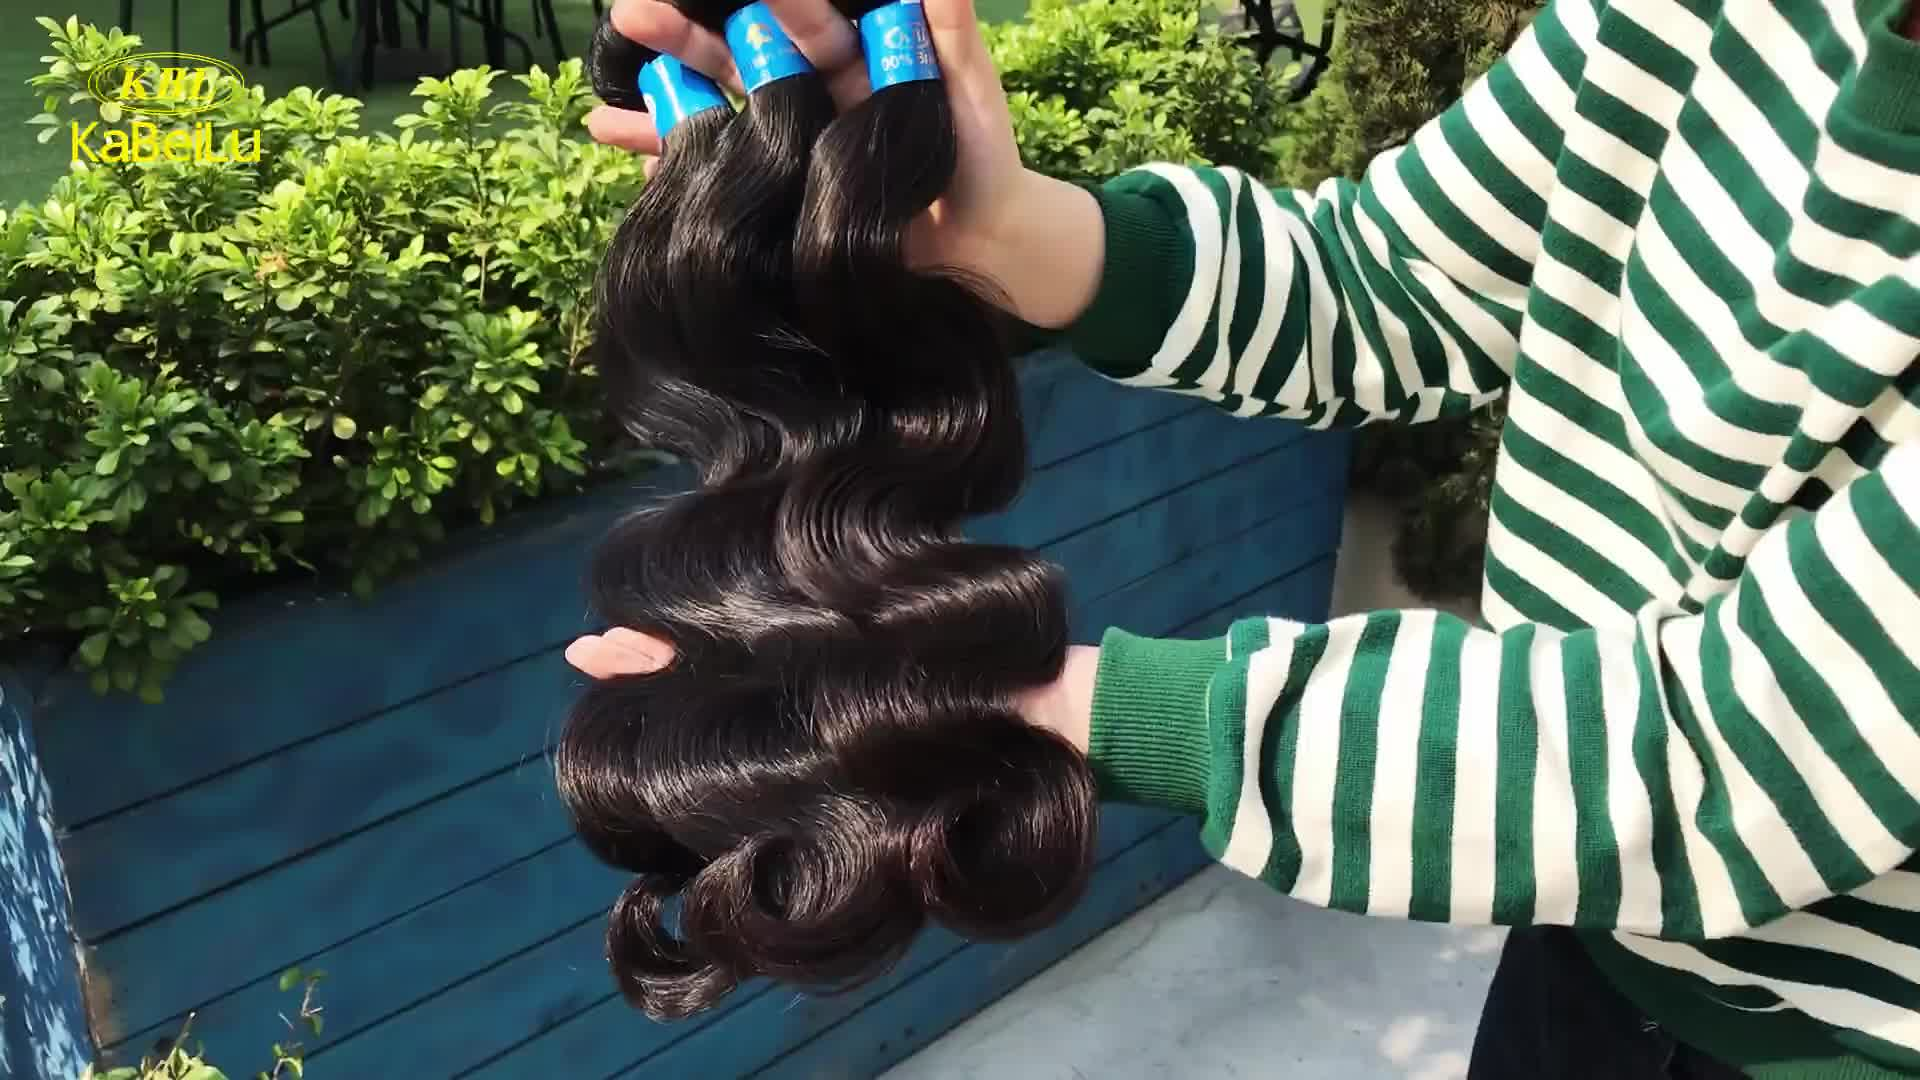 All express brazilian hair style picture,Raw body wave virgin brazilian human hair extension,how to start selling brazilian hair